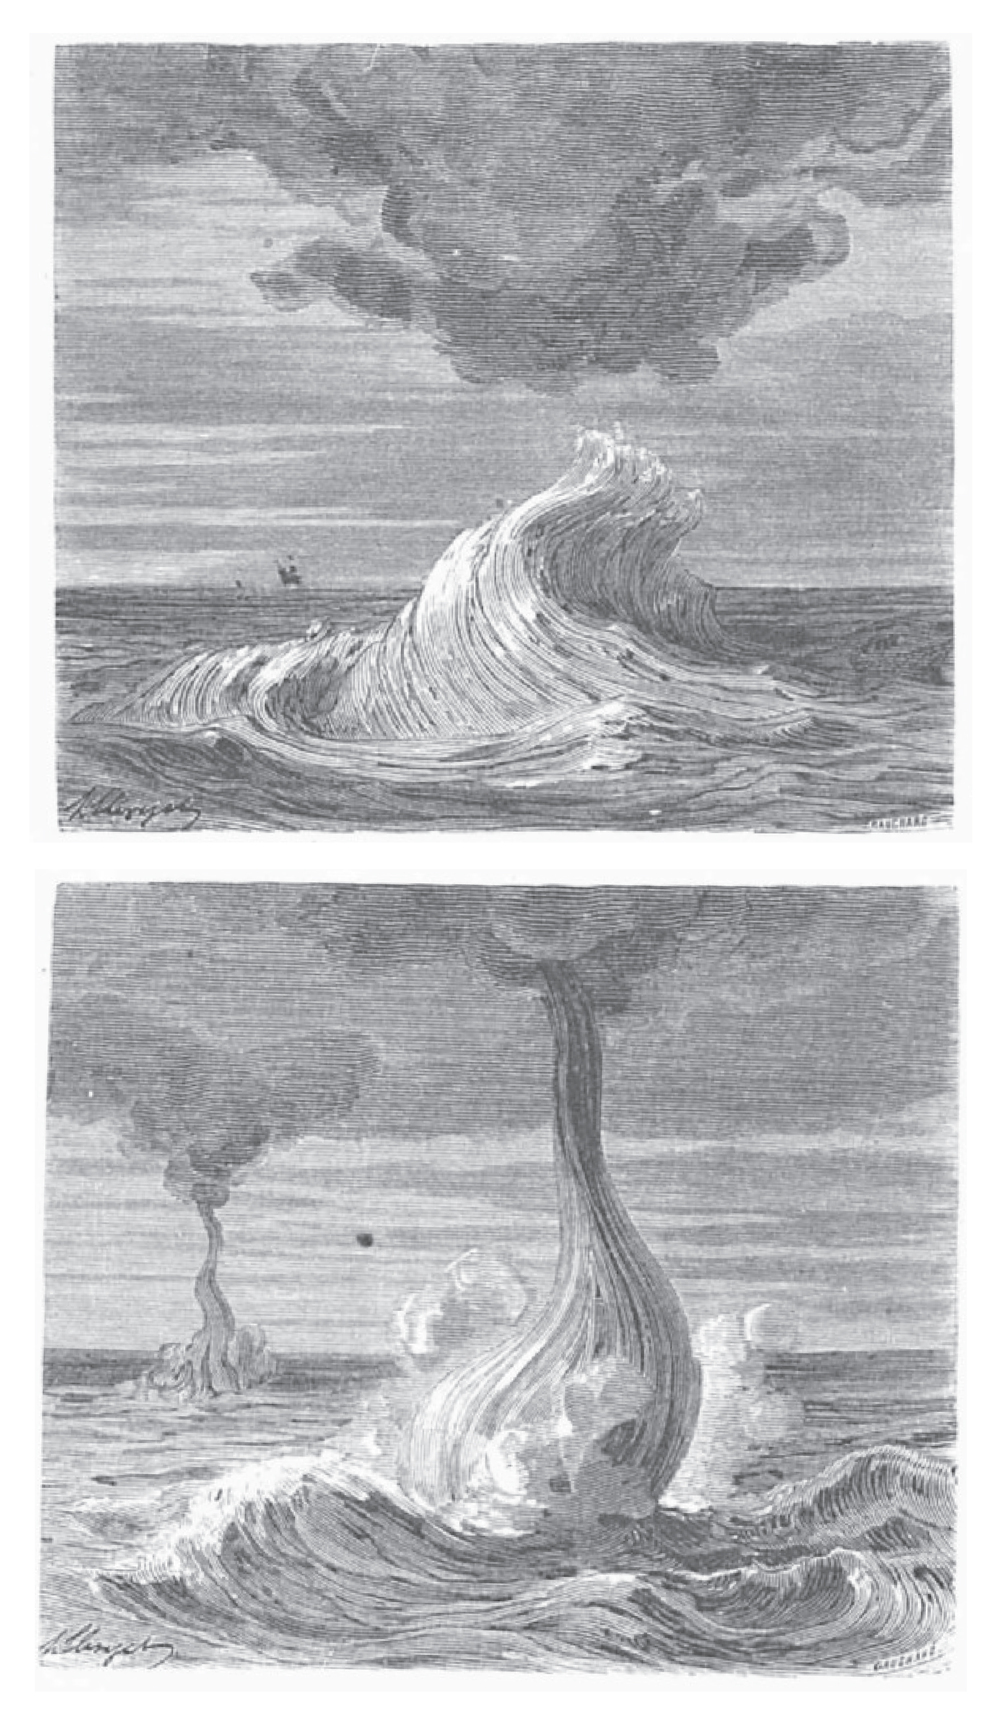 Depictions of waterspouts from Thunder and Lightning (1866) by the French science writer and balloonist Wilfrid de Fonvielle (1824–1914). The evolution of waterspouts that occurred on 17 May 1773 off Cape Stephens (New Zealand) based on a described by Georg Forester (1754–94) from  A Voyage Round the World  (1777) an account of  James Cook's second voyage to the Pacific (1772–75).